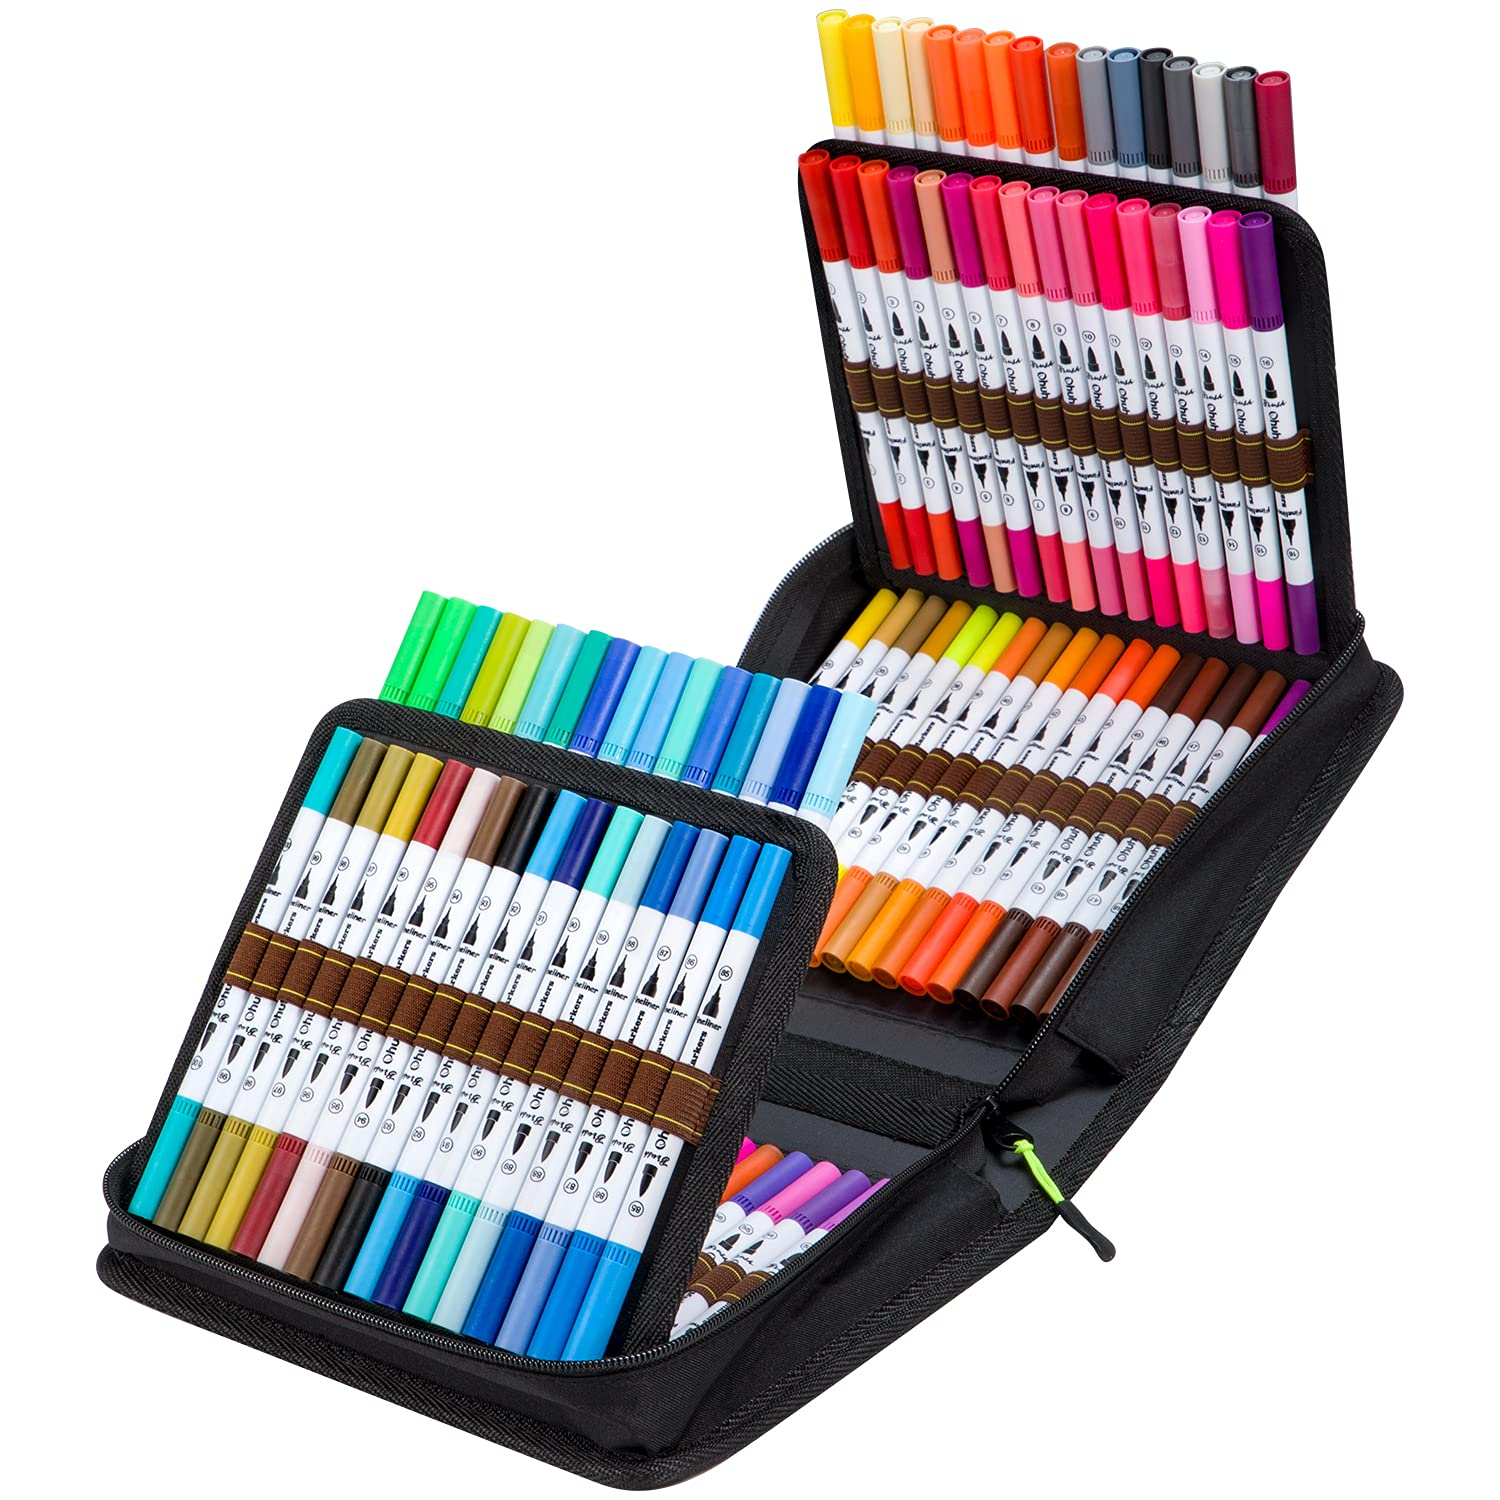 100 Colors Art Markers Set, Ohuhu Dual Tips Coloring Brush Fineliner Color Marker Pens, Water Based Marker for Calligraphy Drawing Sketching Coloring Bullet Journal Father's Day Gift